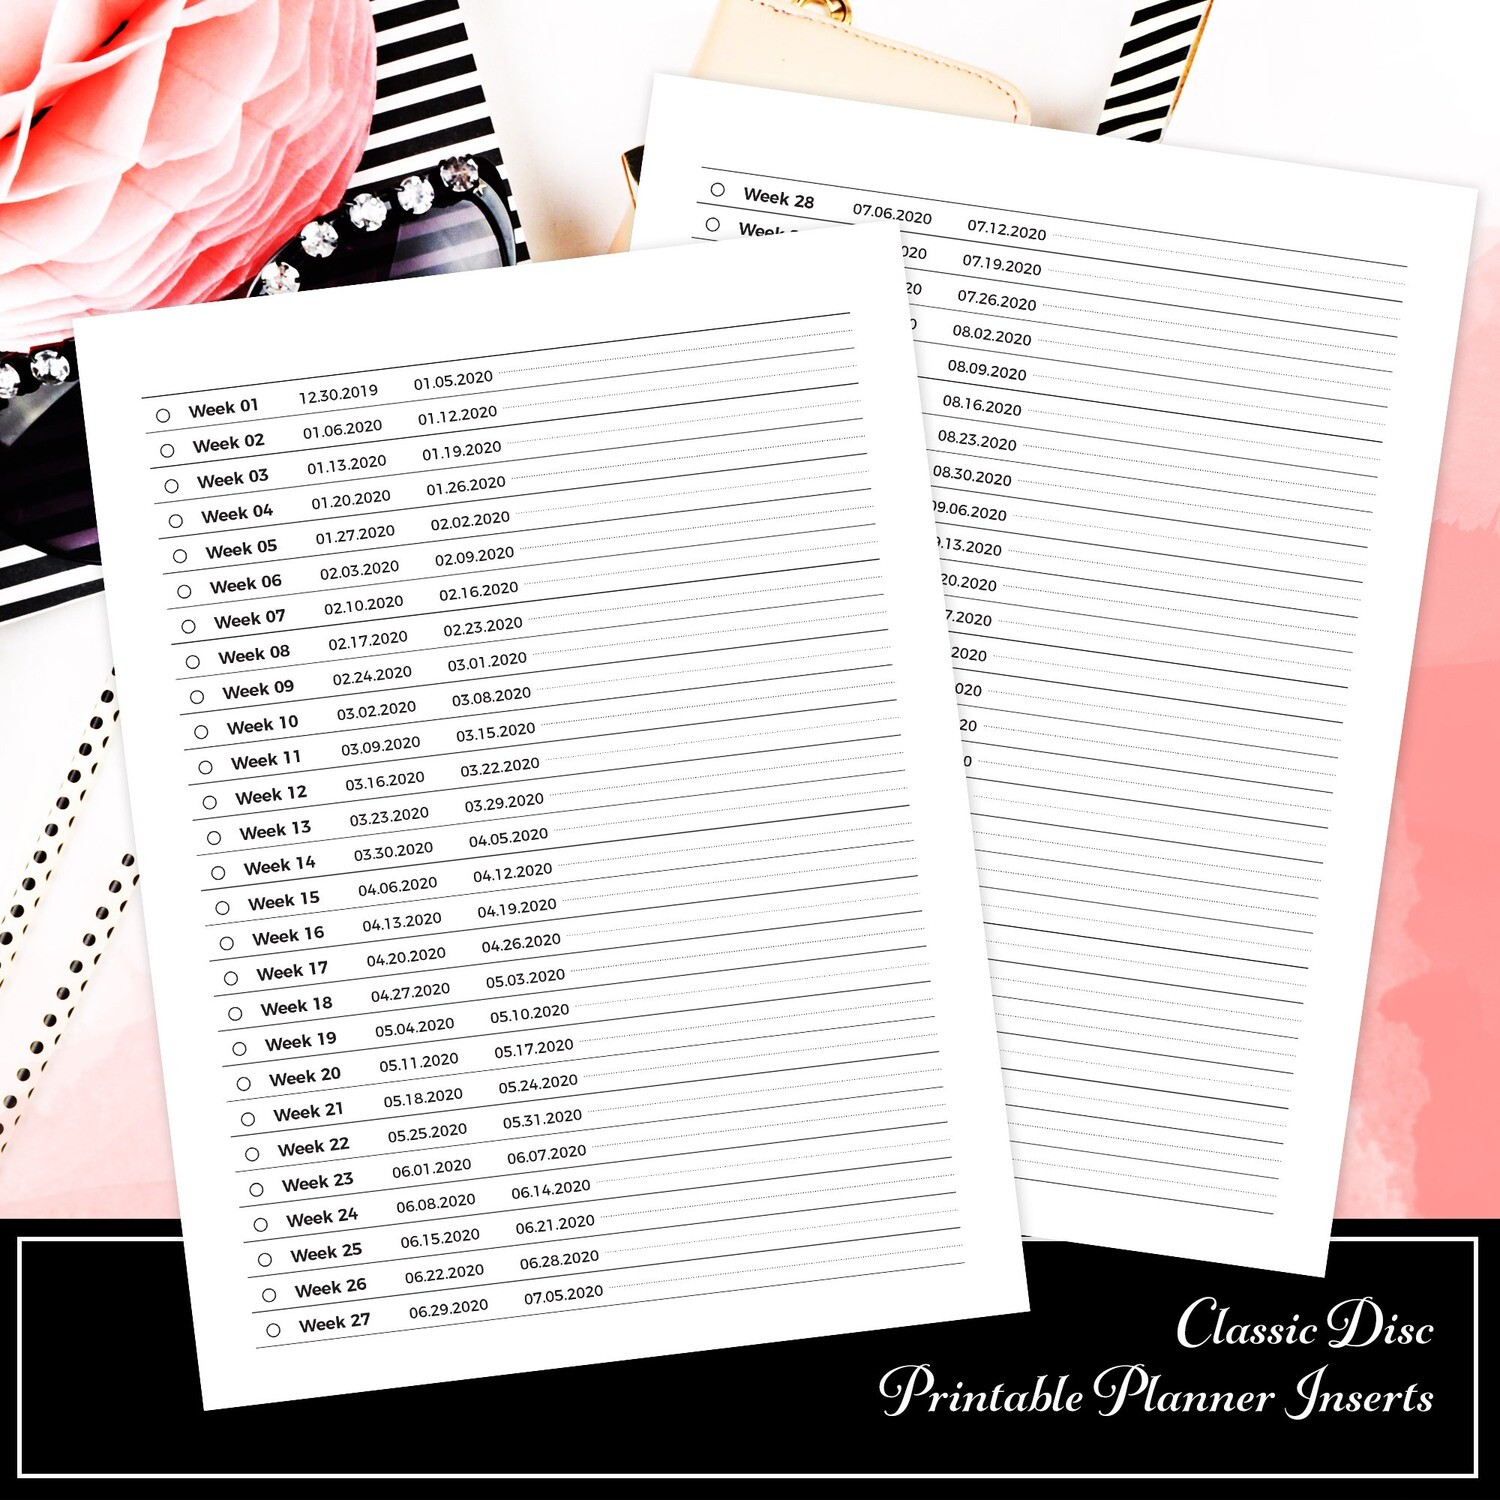 CLASSIC - 2020 Weekly Dated Tracker Printable Planner Insert